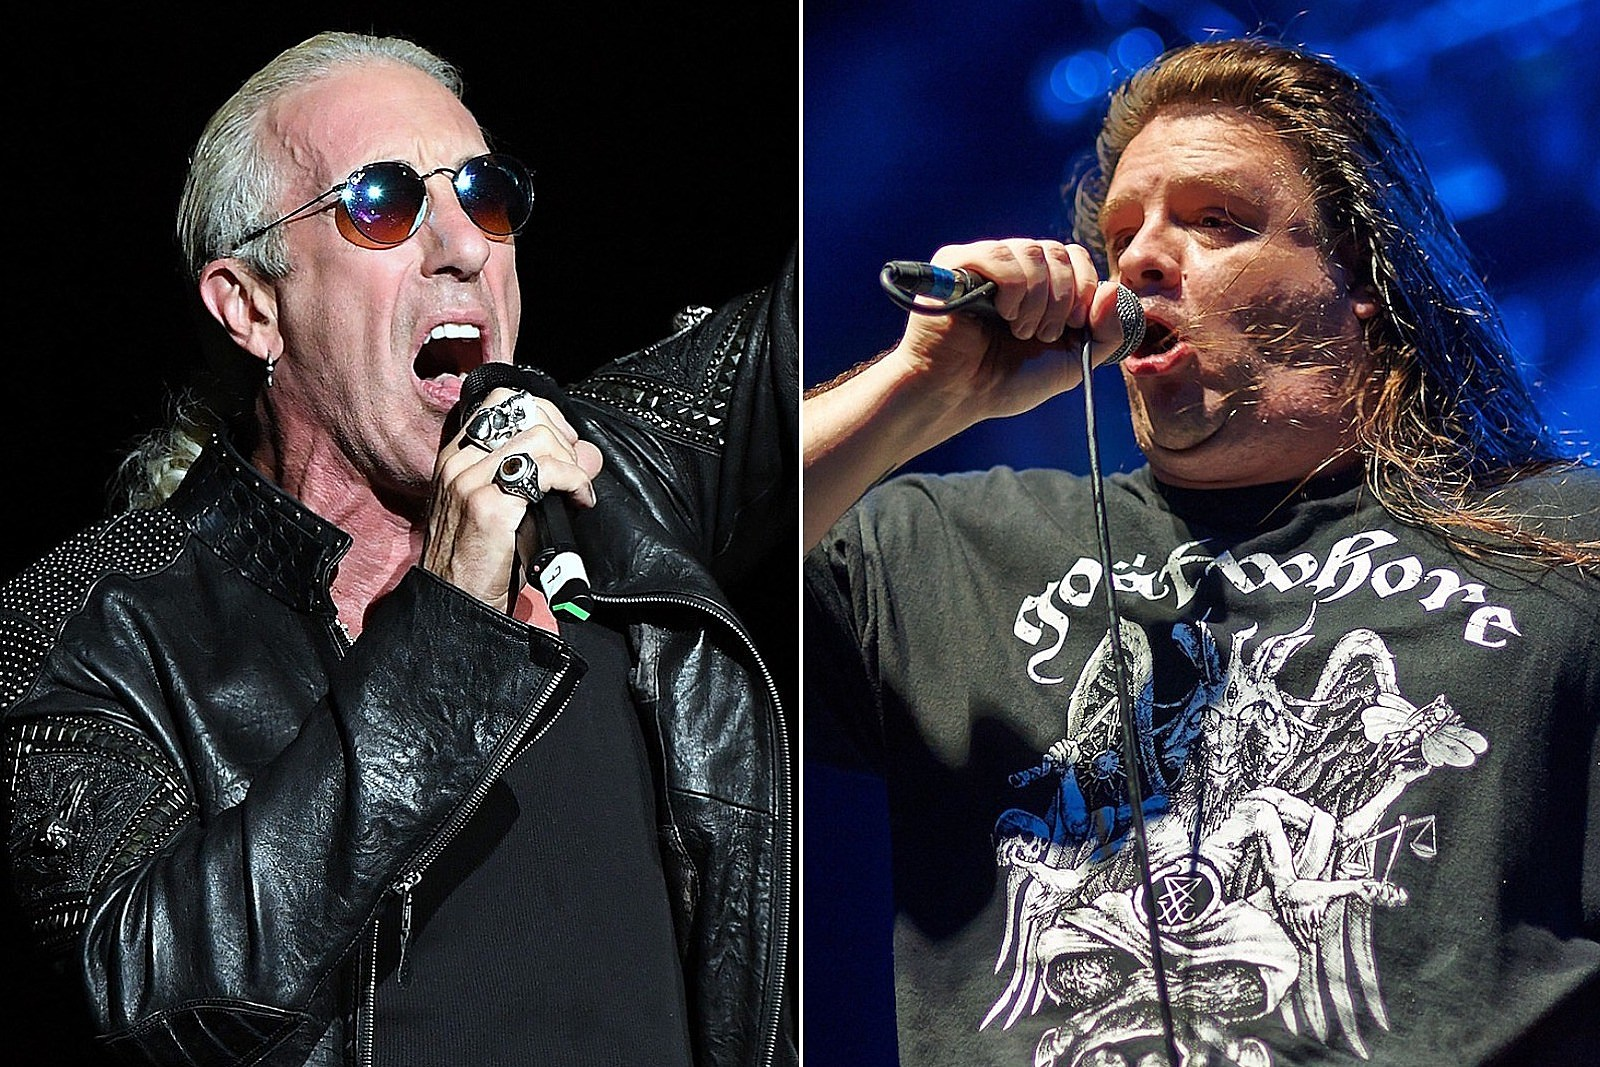 Dee Snider Unleashes Blistering New Song 'Time to Choose'